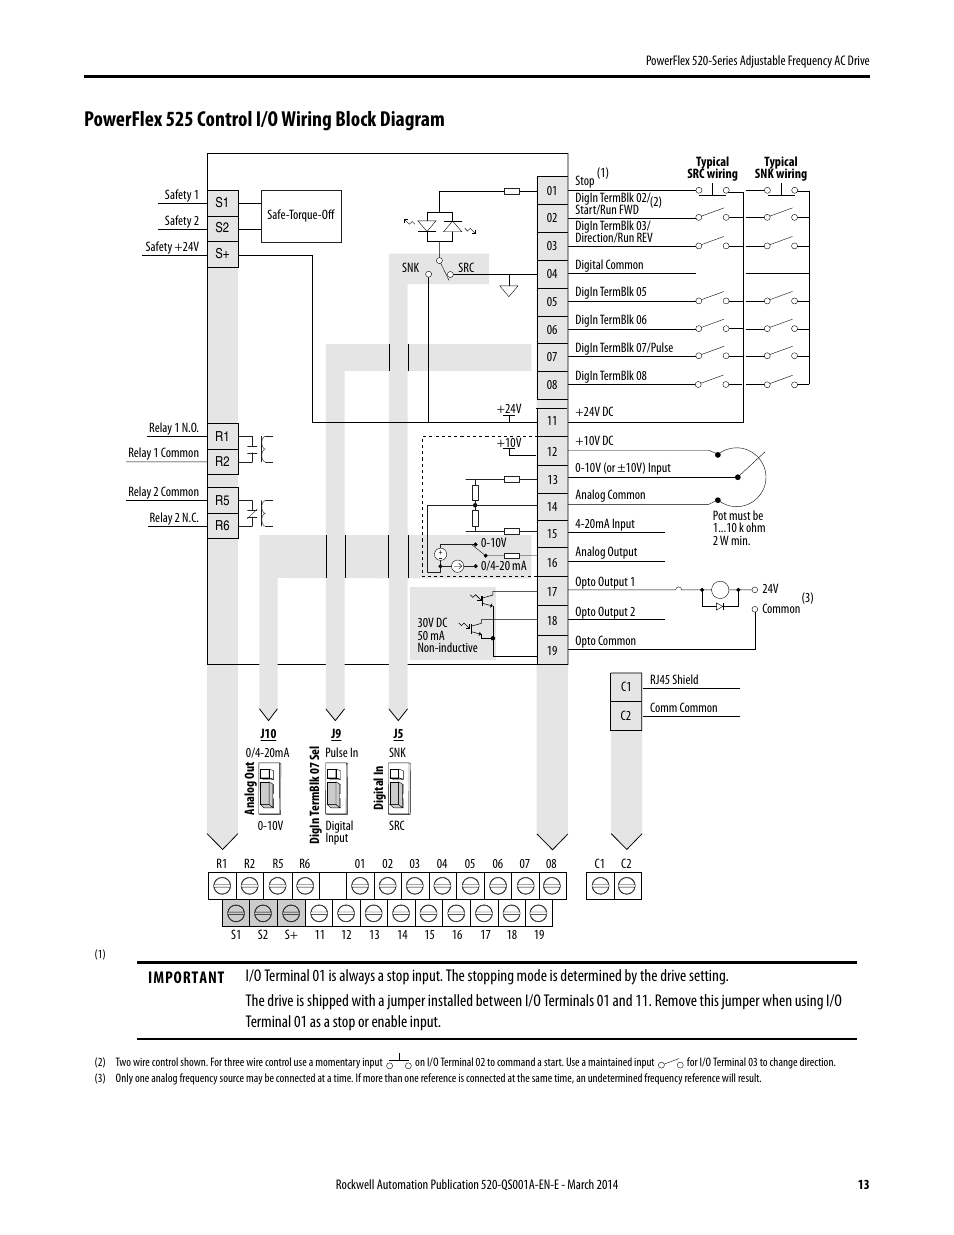 powerflex 525 control i o wiring block diagram rockwell automation rh manualsdir com powerflex 525 wiring diagram dwg powerflex 525 wiring diagram dwg